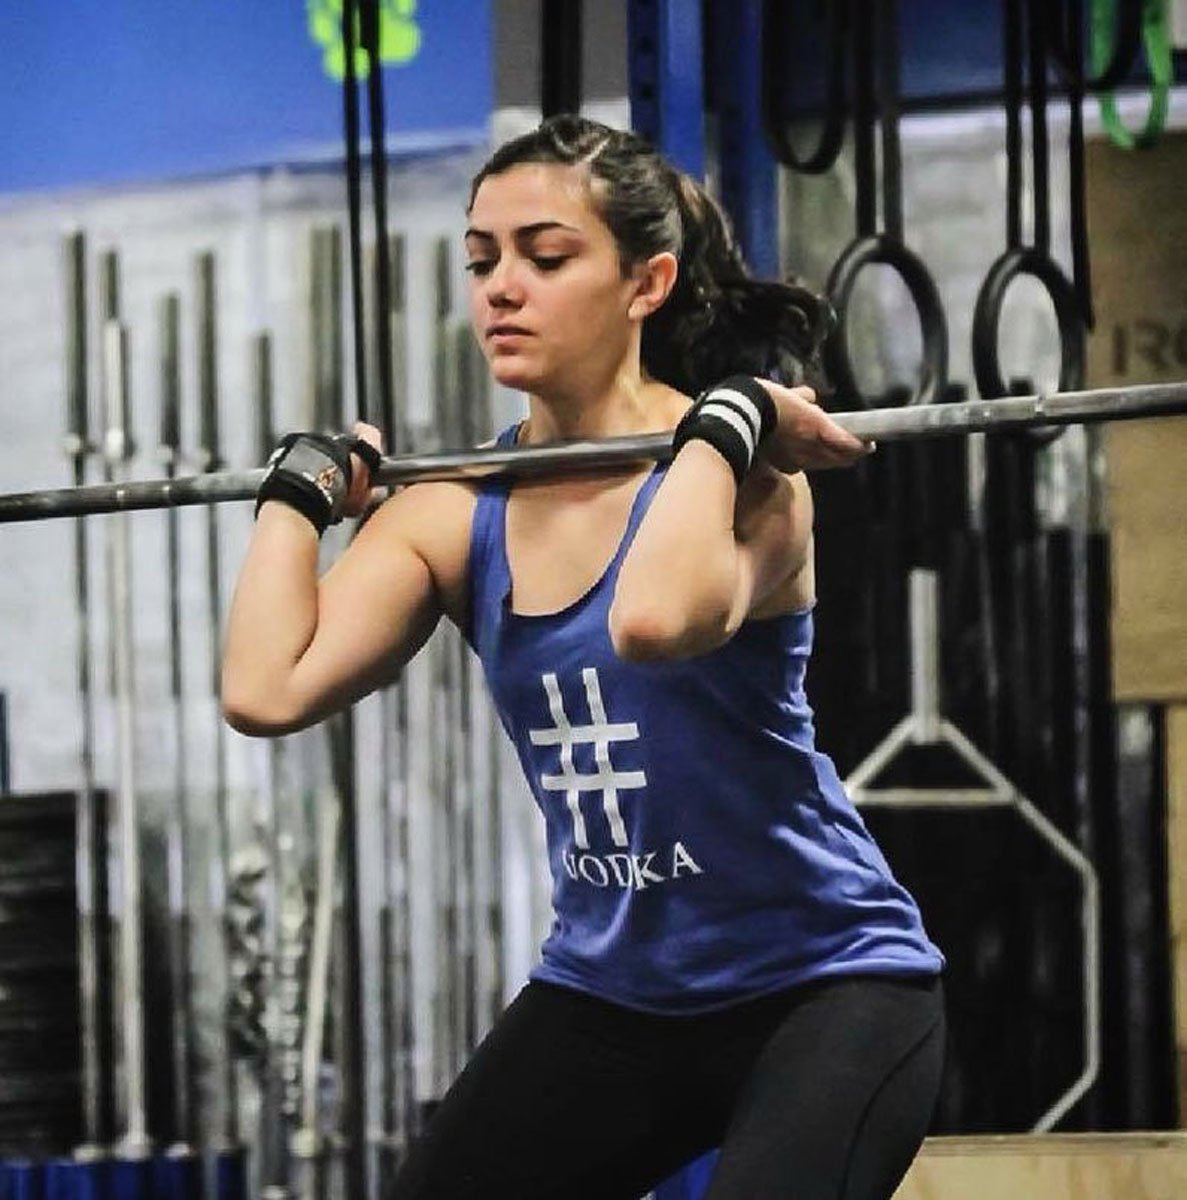 May 2018 Athlete of the Month: Vanessa Lacardie